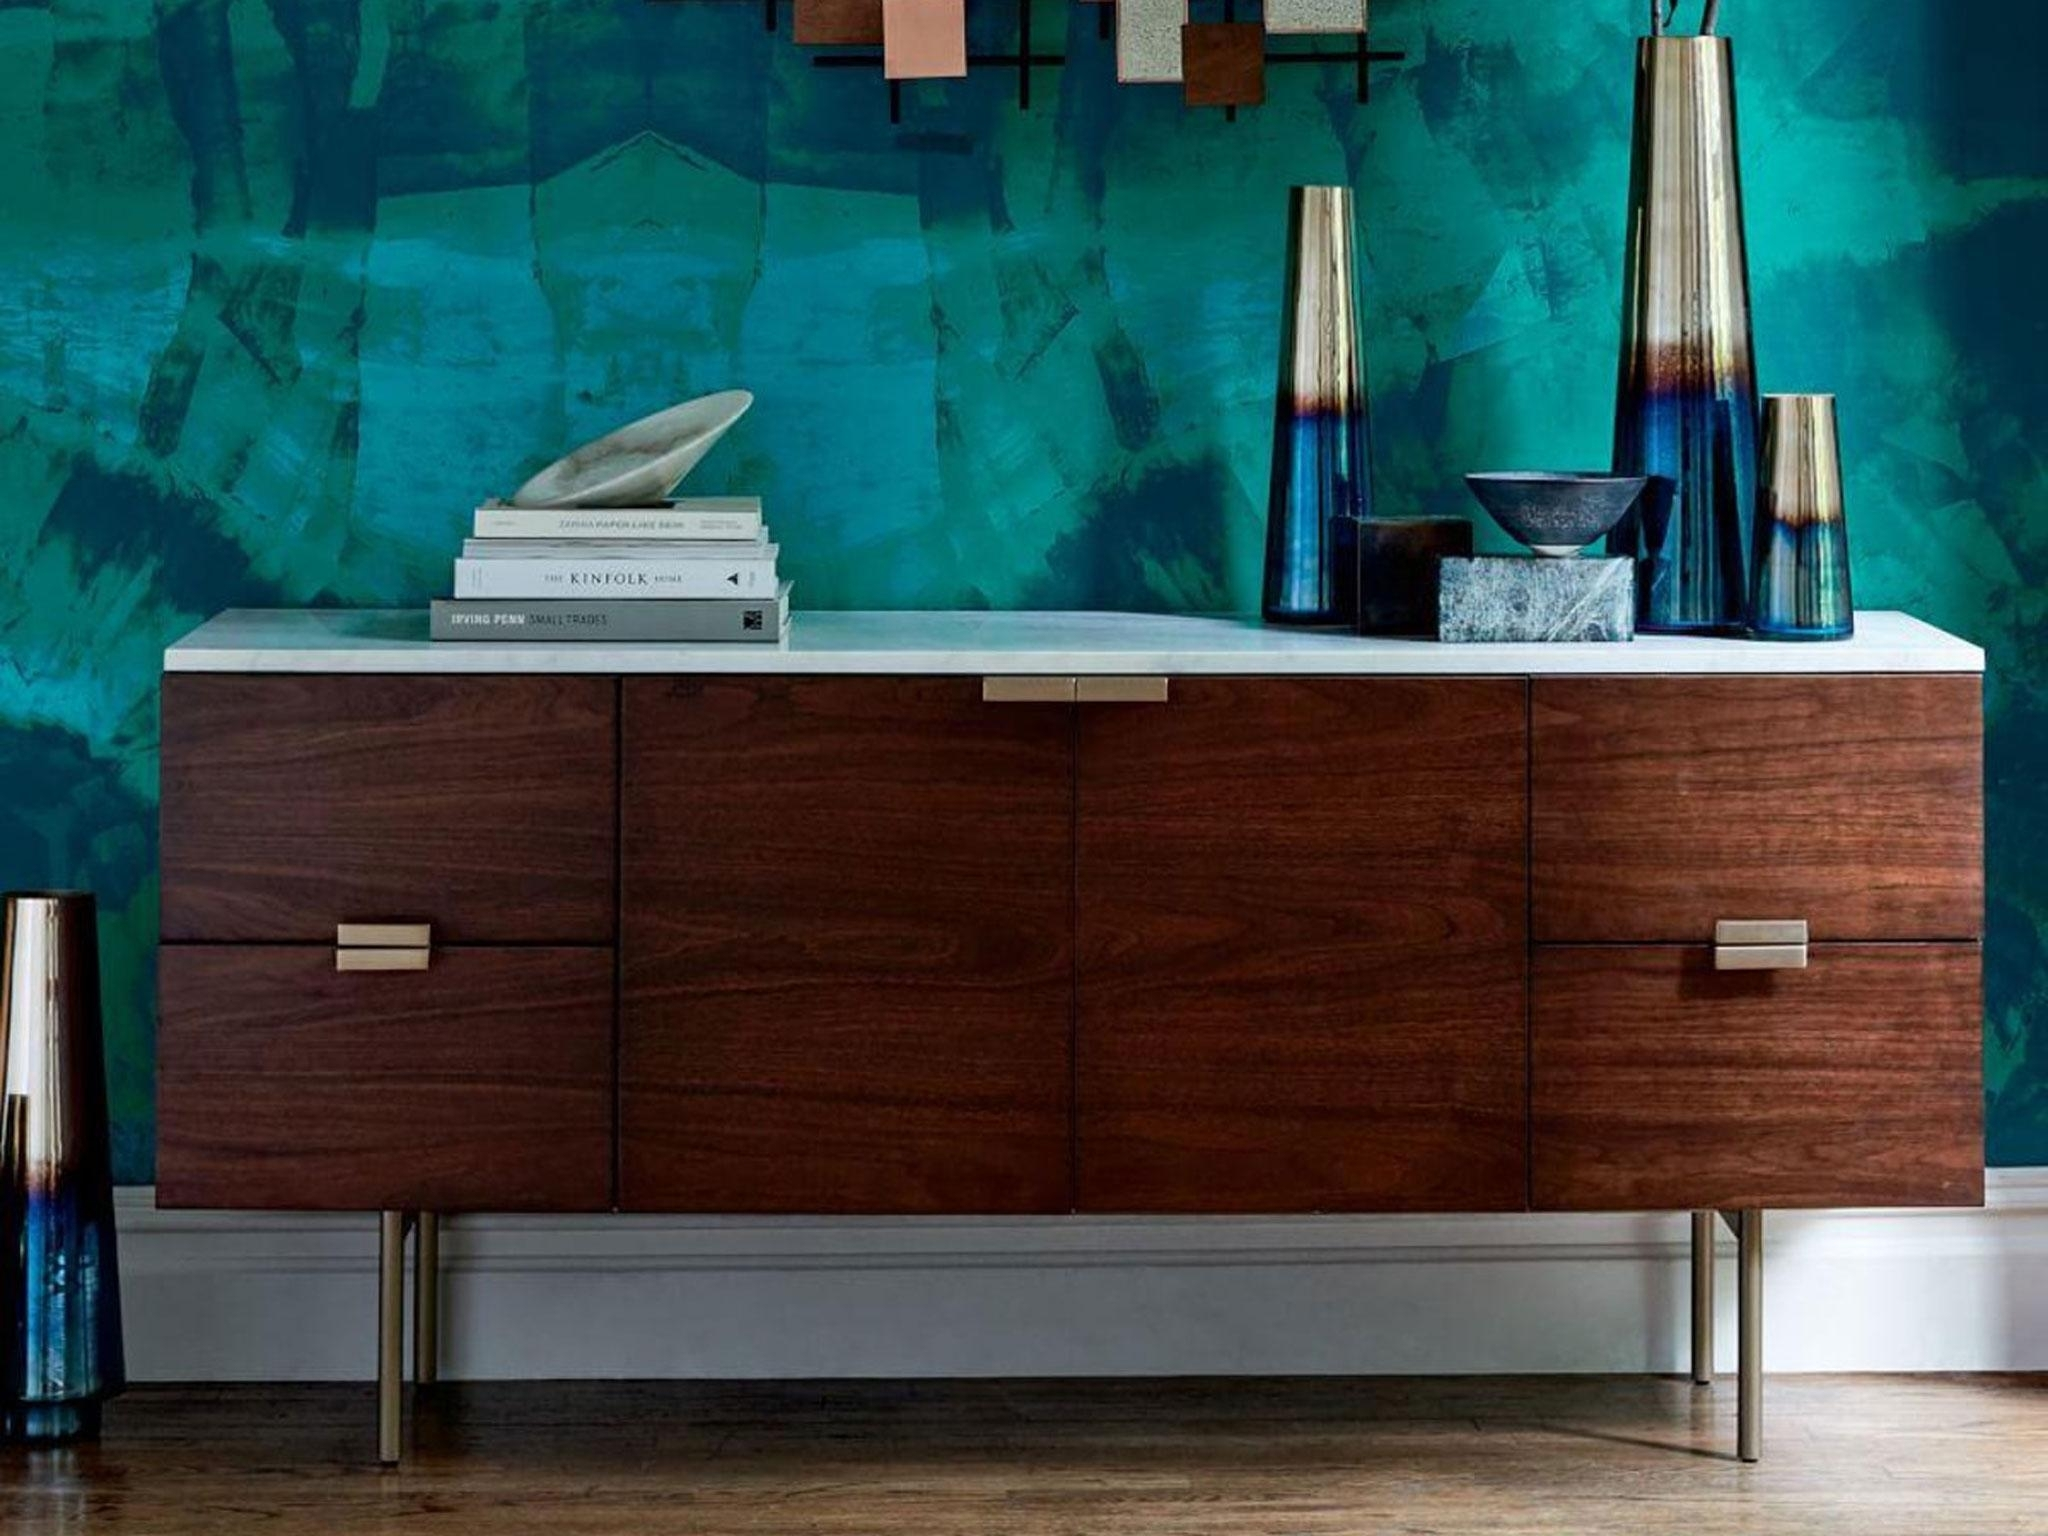 10 Best Sideboards | The Independent in Solar Refinement Sideboards (Image 1 of 30)